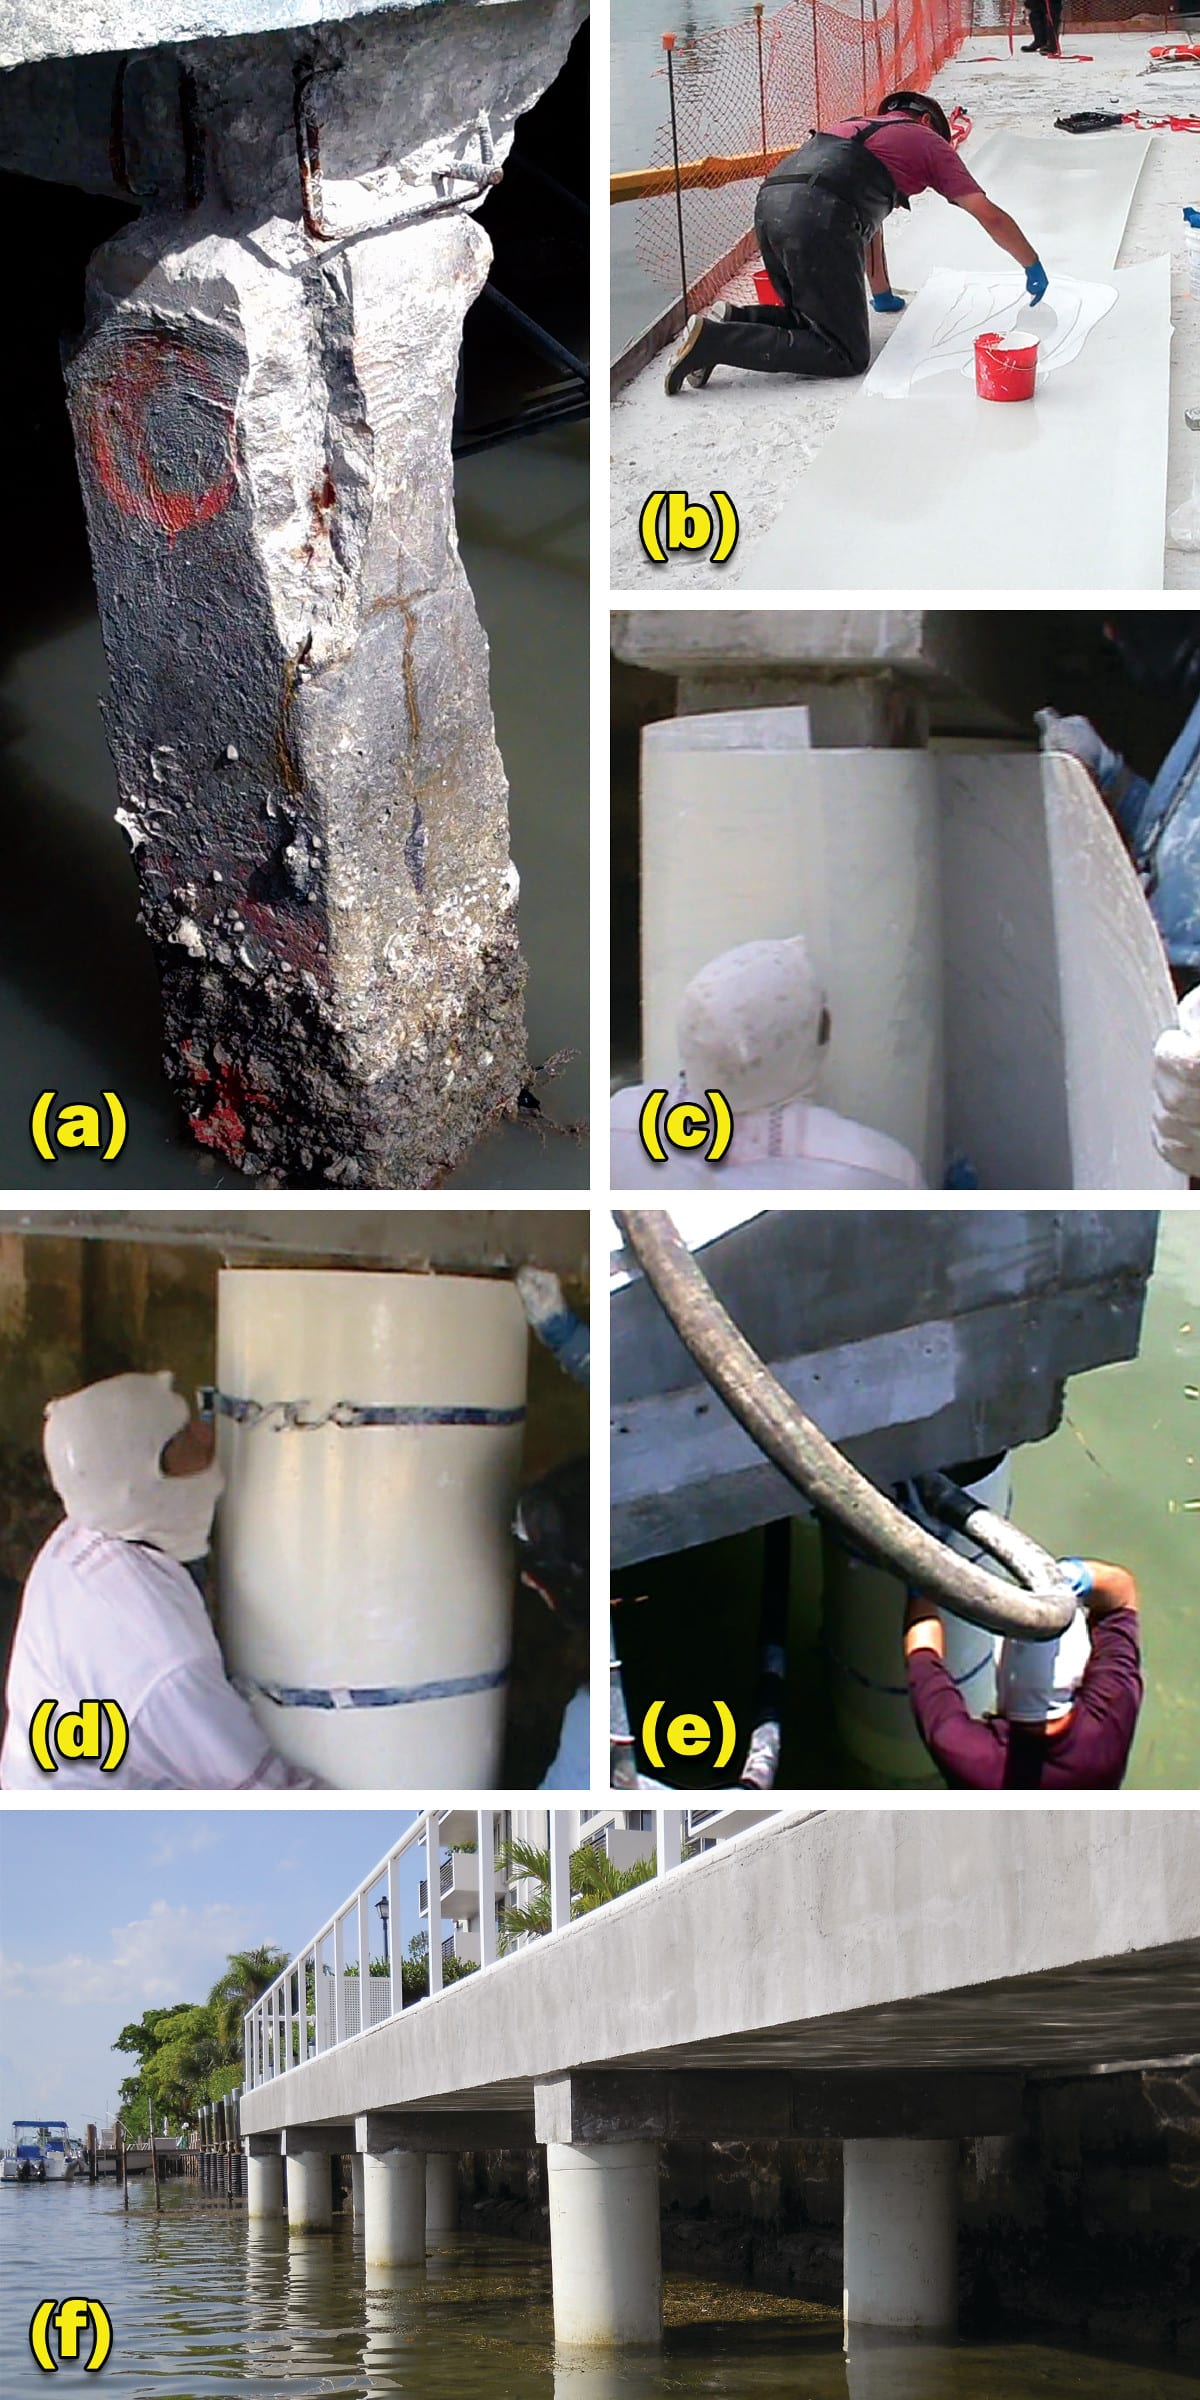 Fig. 5: PileMedicTM repair steps: (a) deteriorated pile; (b) applying moistureinsensitive epoxy to laminate; (c) transporting laminate into water and wrapping it around pile; (d) final jacket size adjustment and temporary support by ratchet straps; (e) filling annular space; and (f) completed piles after removal of ratchet straps